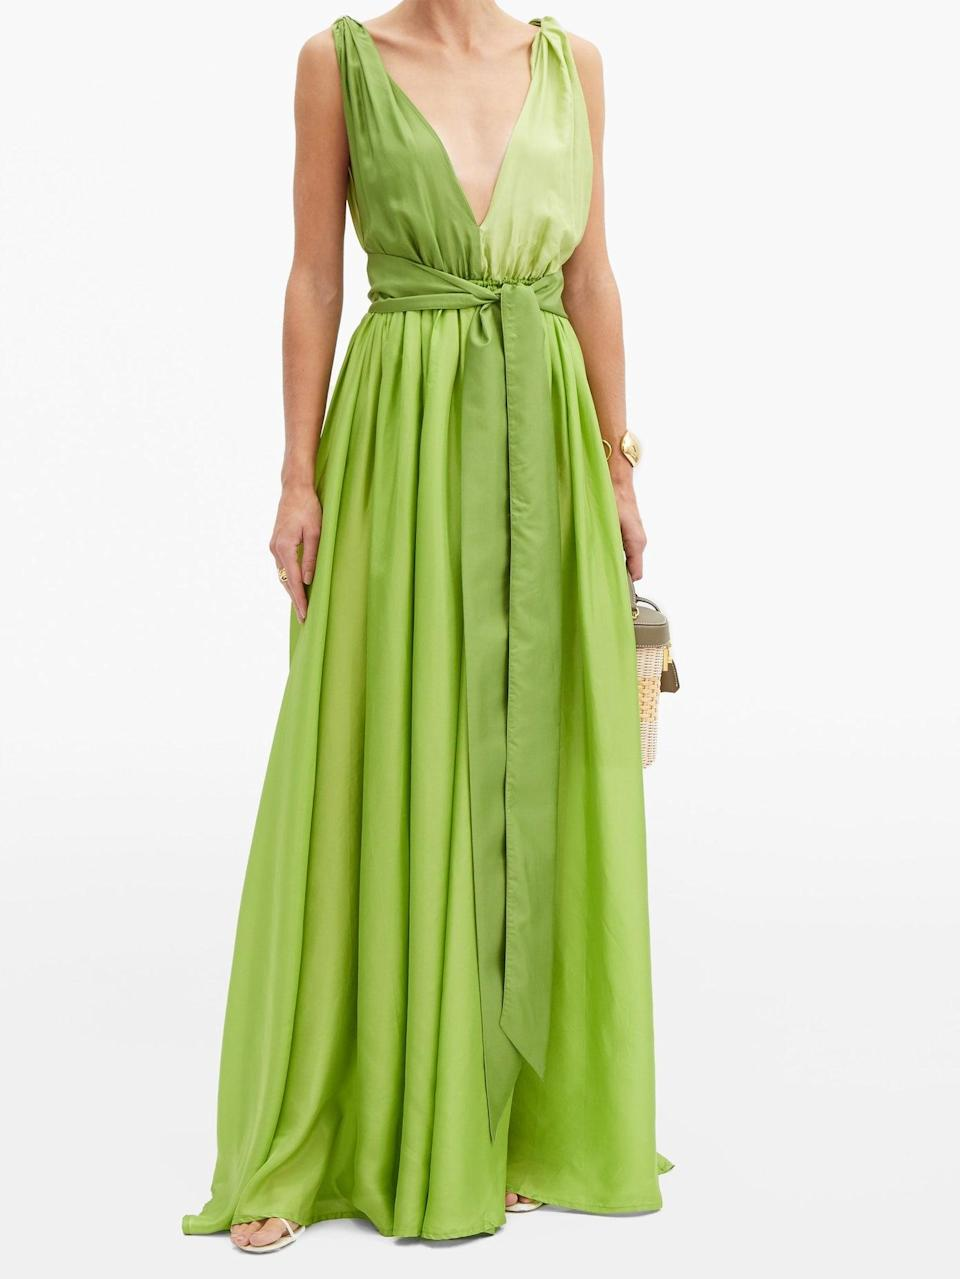 """<h2>Kalia Adonis Gown In Lime</h2><br>Shopping for a summer wedding? Surround yourself with feather-light silk habotai rendered in a tropical shade of lime green.<br><br><em>Shop Kalita at <strong><a href=""""https://www.matchesfashion.com/us/womens/designers/kalita/clothing/dresses"""" rel=""""nofollow noopener"""" target=""""_blank"""" data-ylk=""""slk:MatchesFashion"""" class=""""link rapid-noclick-resp"""">MatchesFashion</a></strong></em><br><br><strong>Kalita</strong> Adonis V-neck silk-habotai maxi dress, $, available at <a href=""""https://go.skimresources.com/?id=30283X879131&url=https%3A%2F%2Fwww.matchesfashion.com%2Fus%2Fproducts%2F1361735%3F"""" rel=""""nofollow noopener"""" target=""""_blank"""" data-ylk=""""slk:MatchesFashion"""" class=""""link rapid-noclick-resp"""">MatchesFashion</a>"""